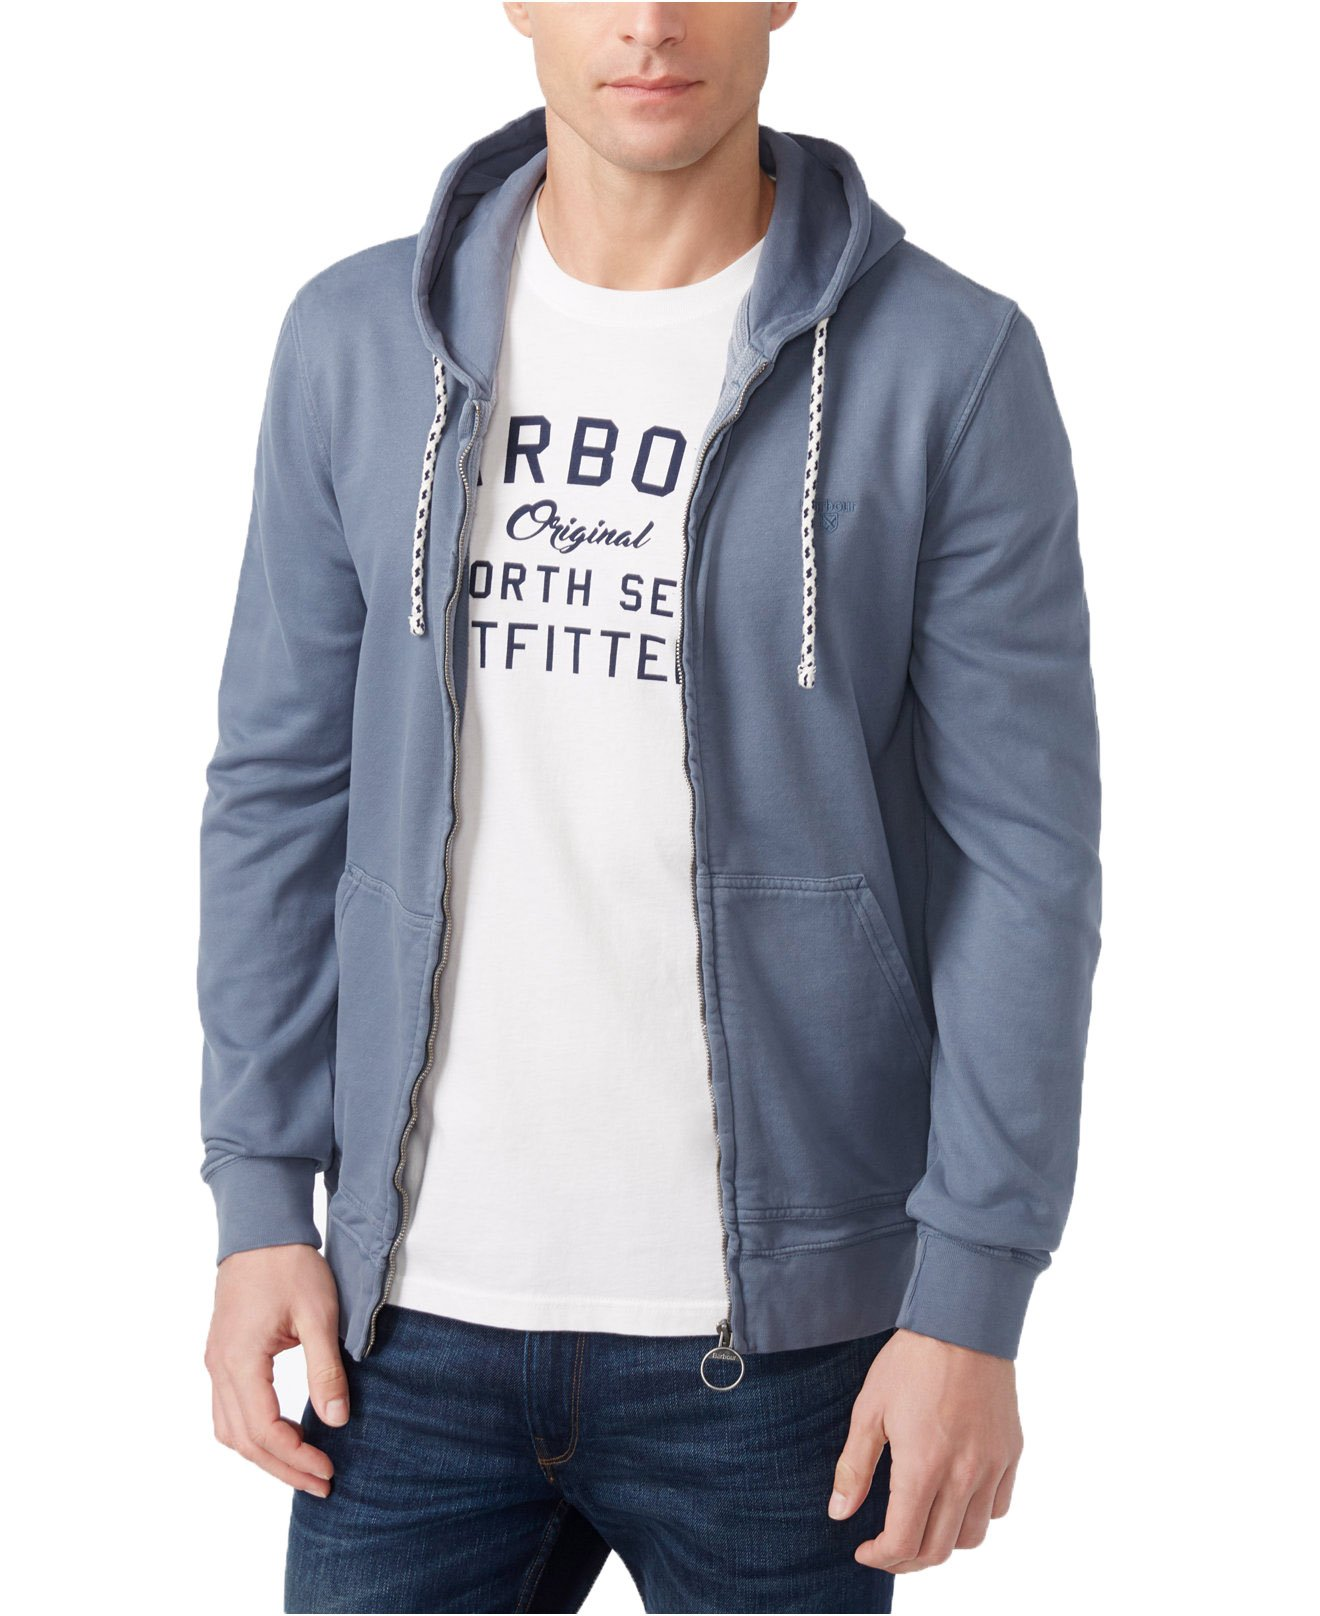 Barbour Men's Bantham Zip Hoodie (Medium, Washed Blue) by Barbour